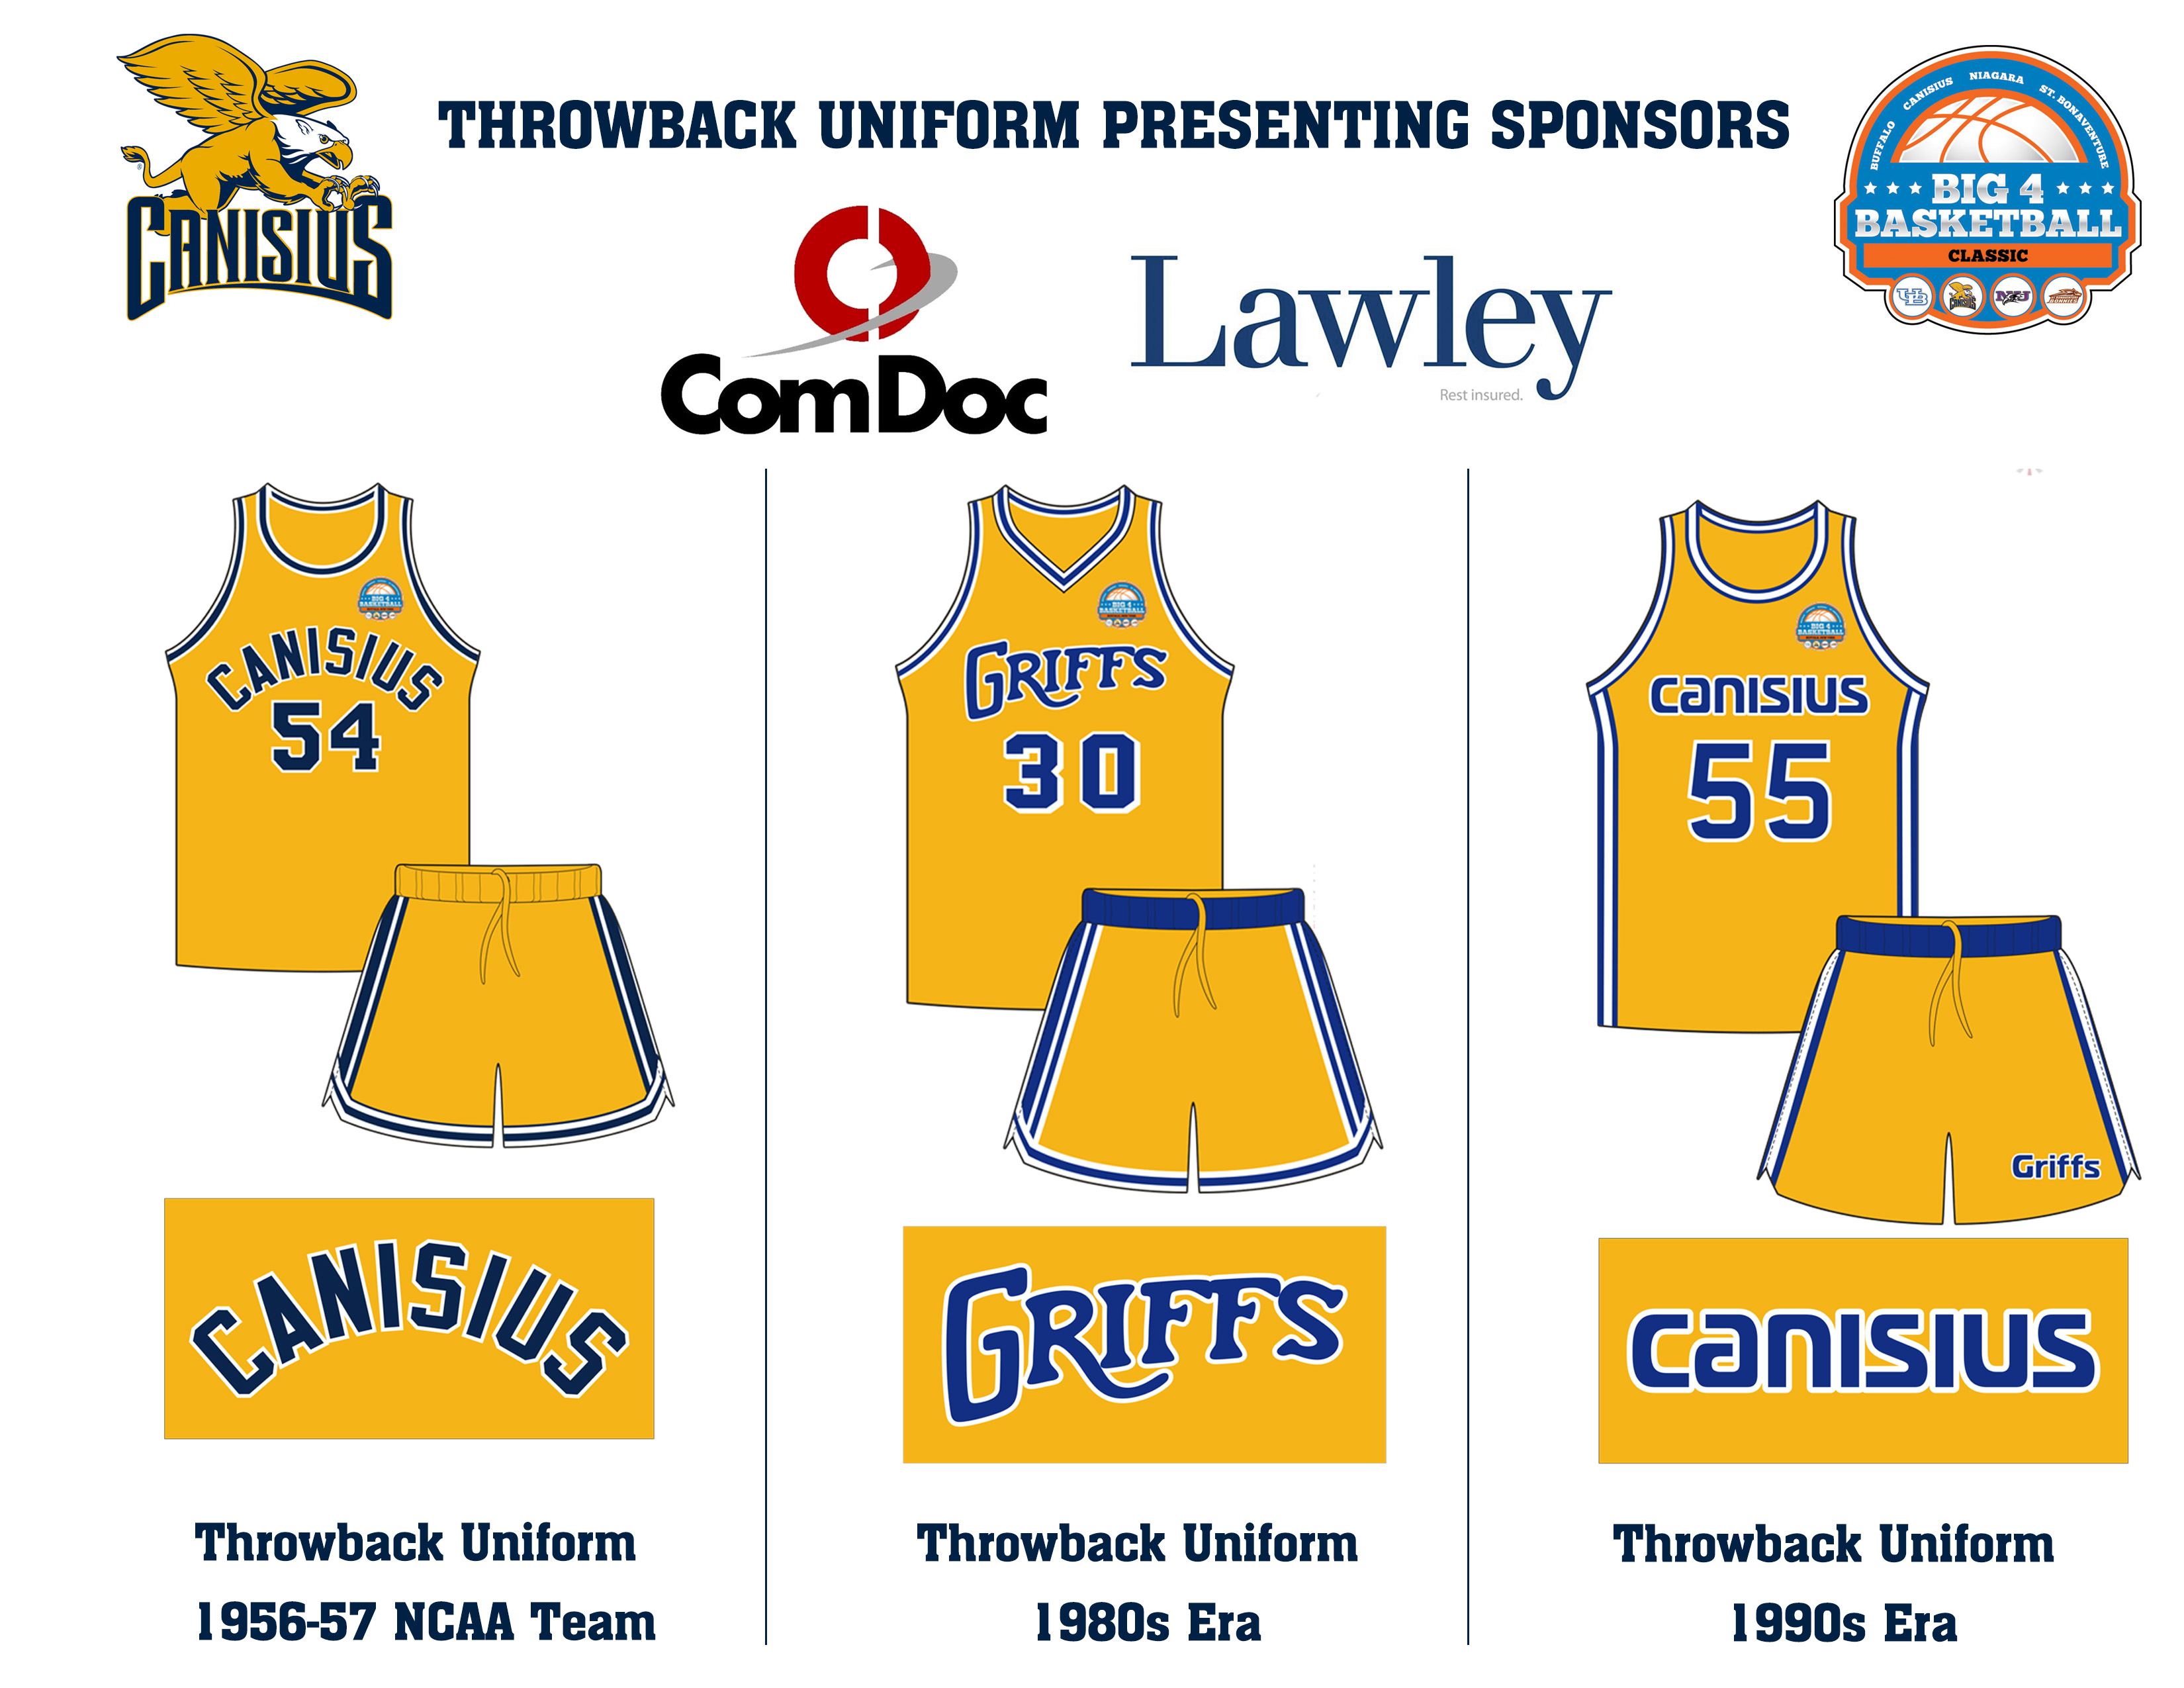 The Canisius throwback uniform options.